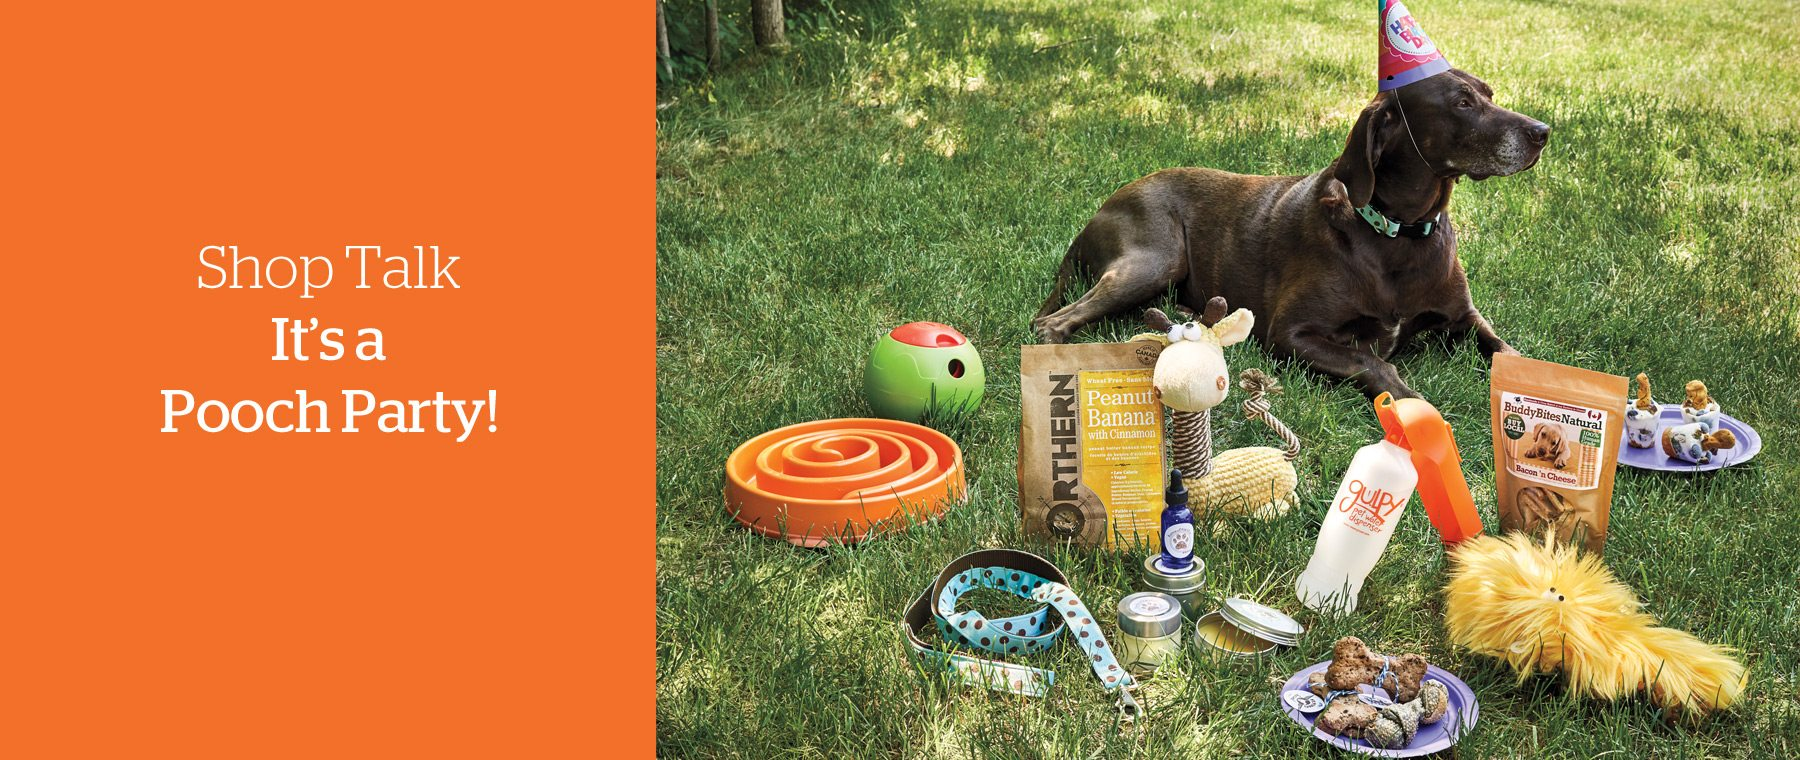 Shop Talk: Pooch Party!